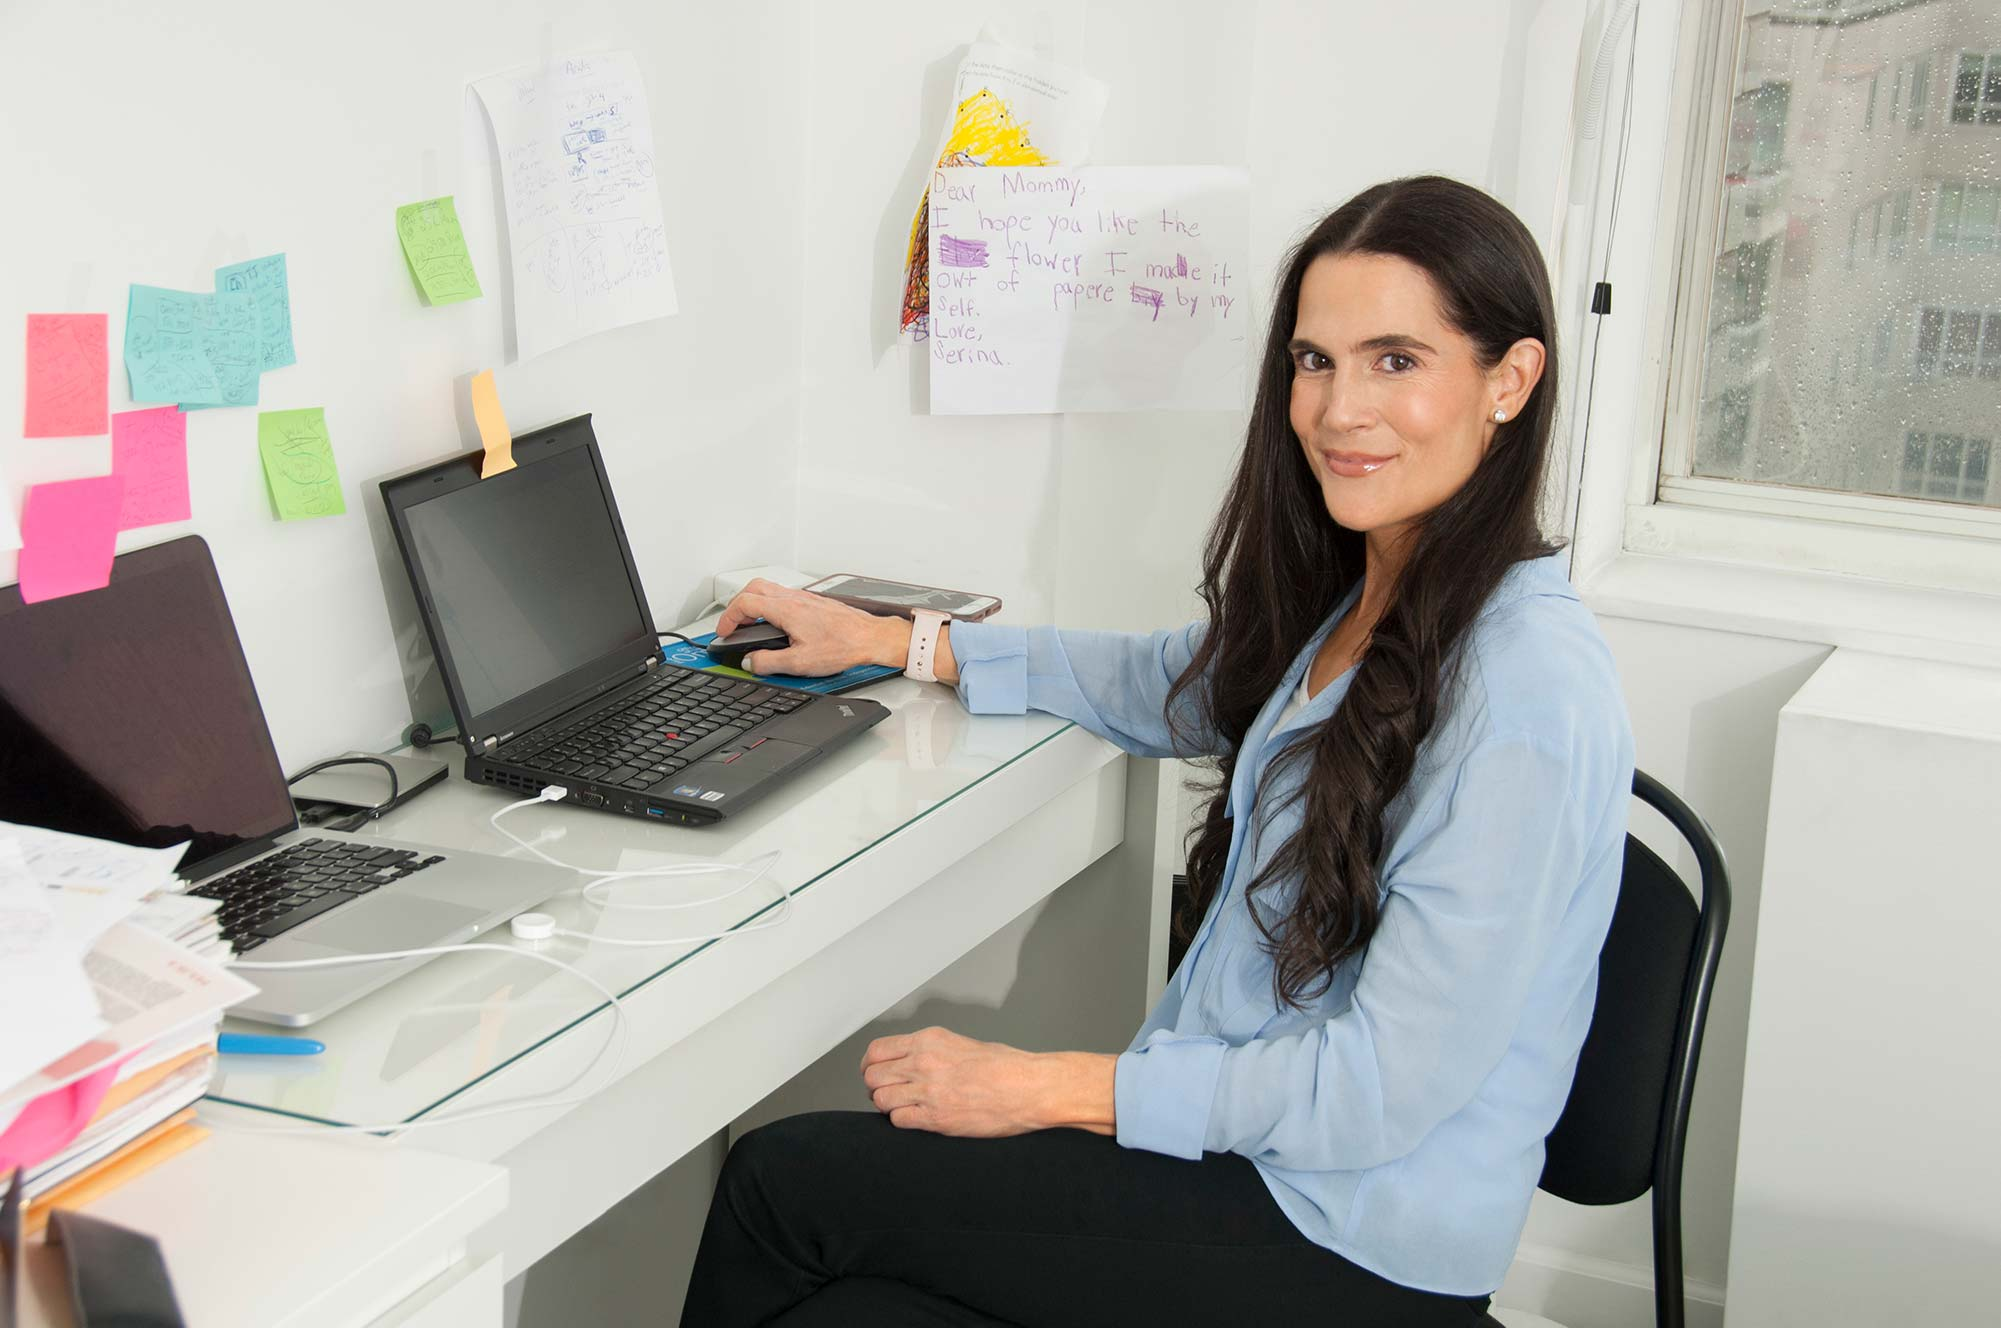 Dr. Alison Mitzner working at her desk on her laptop in a blue shirt, becoming a mom expert source for parents